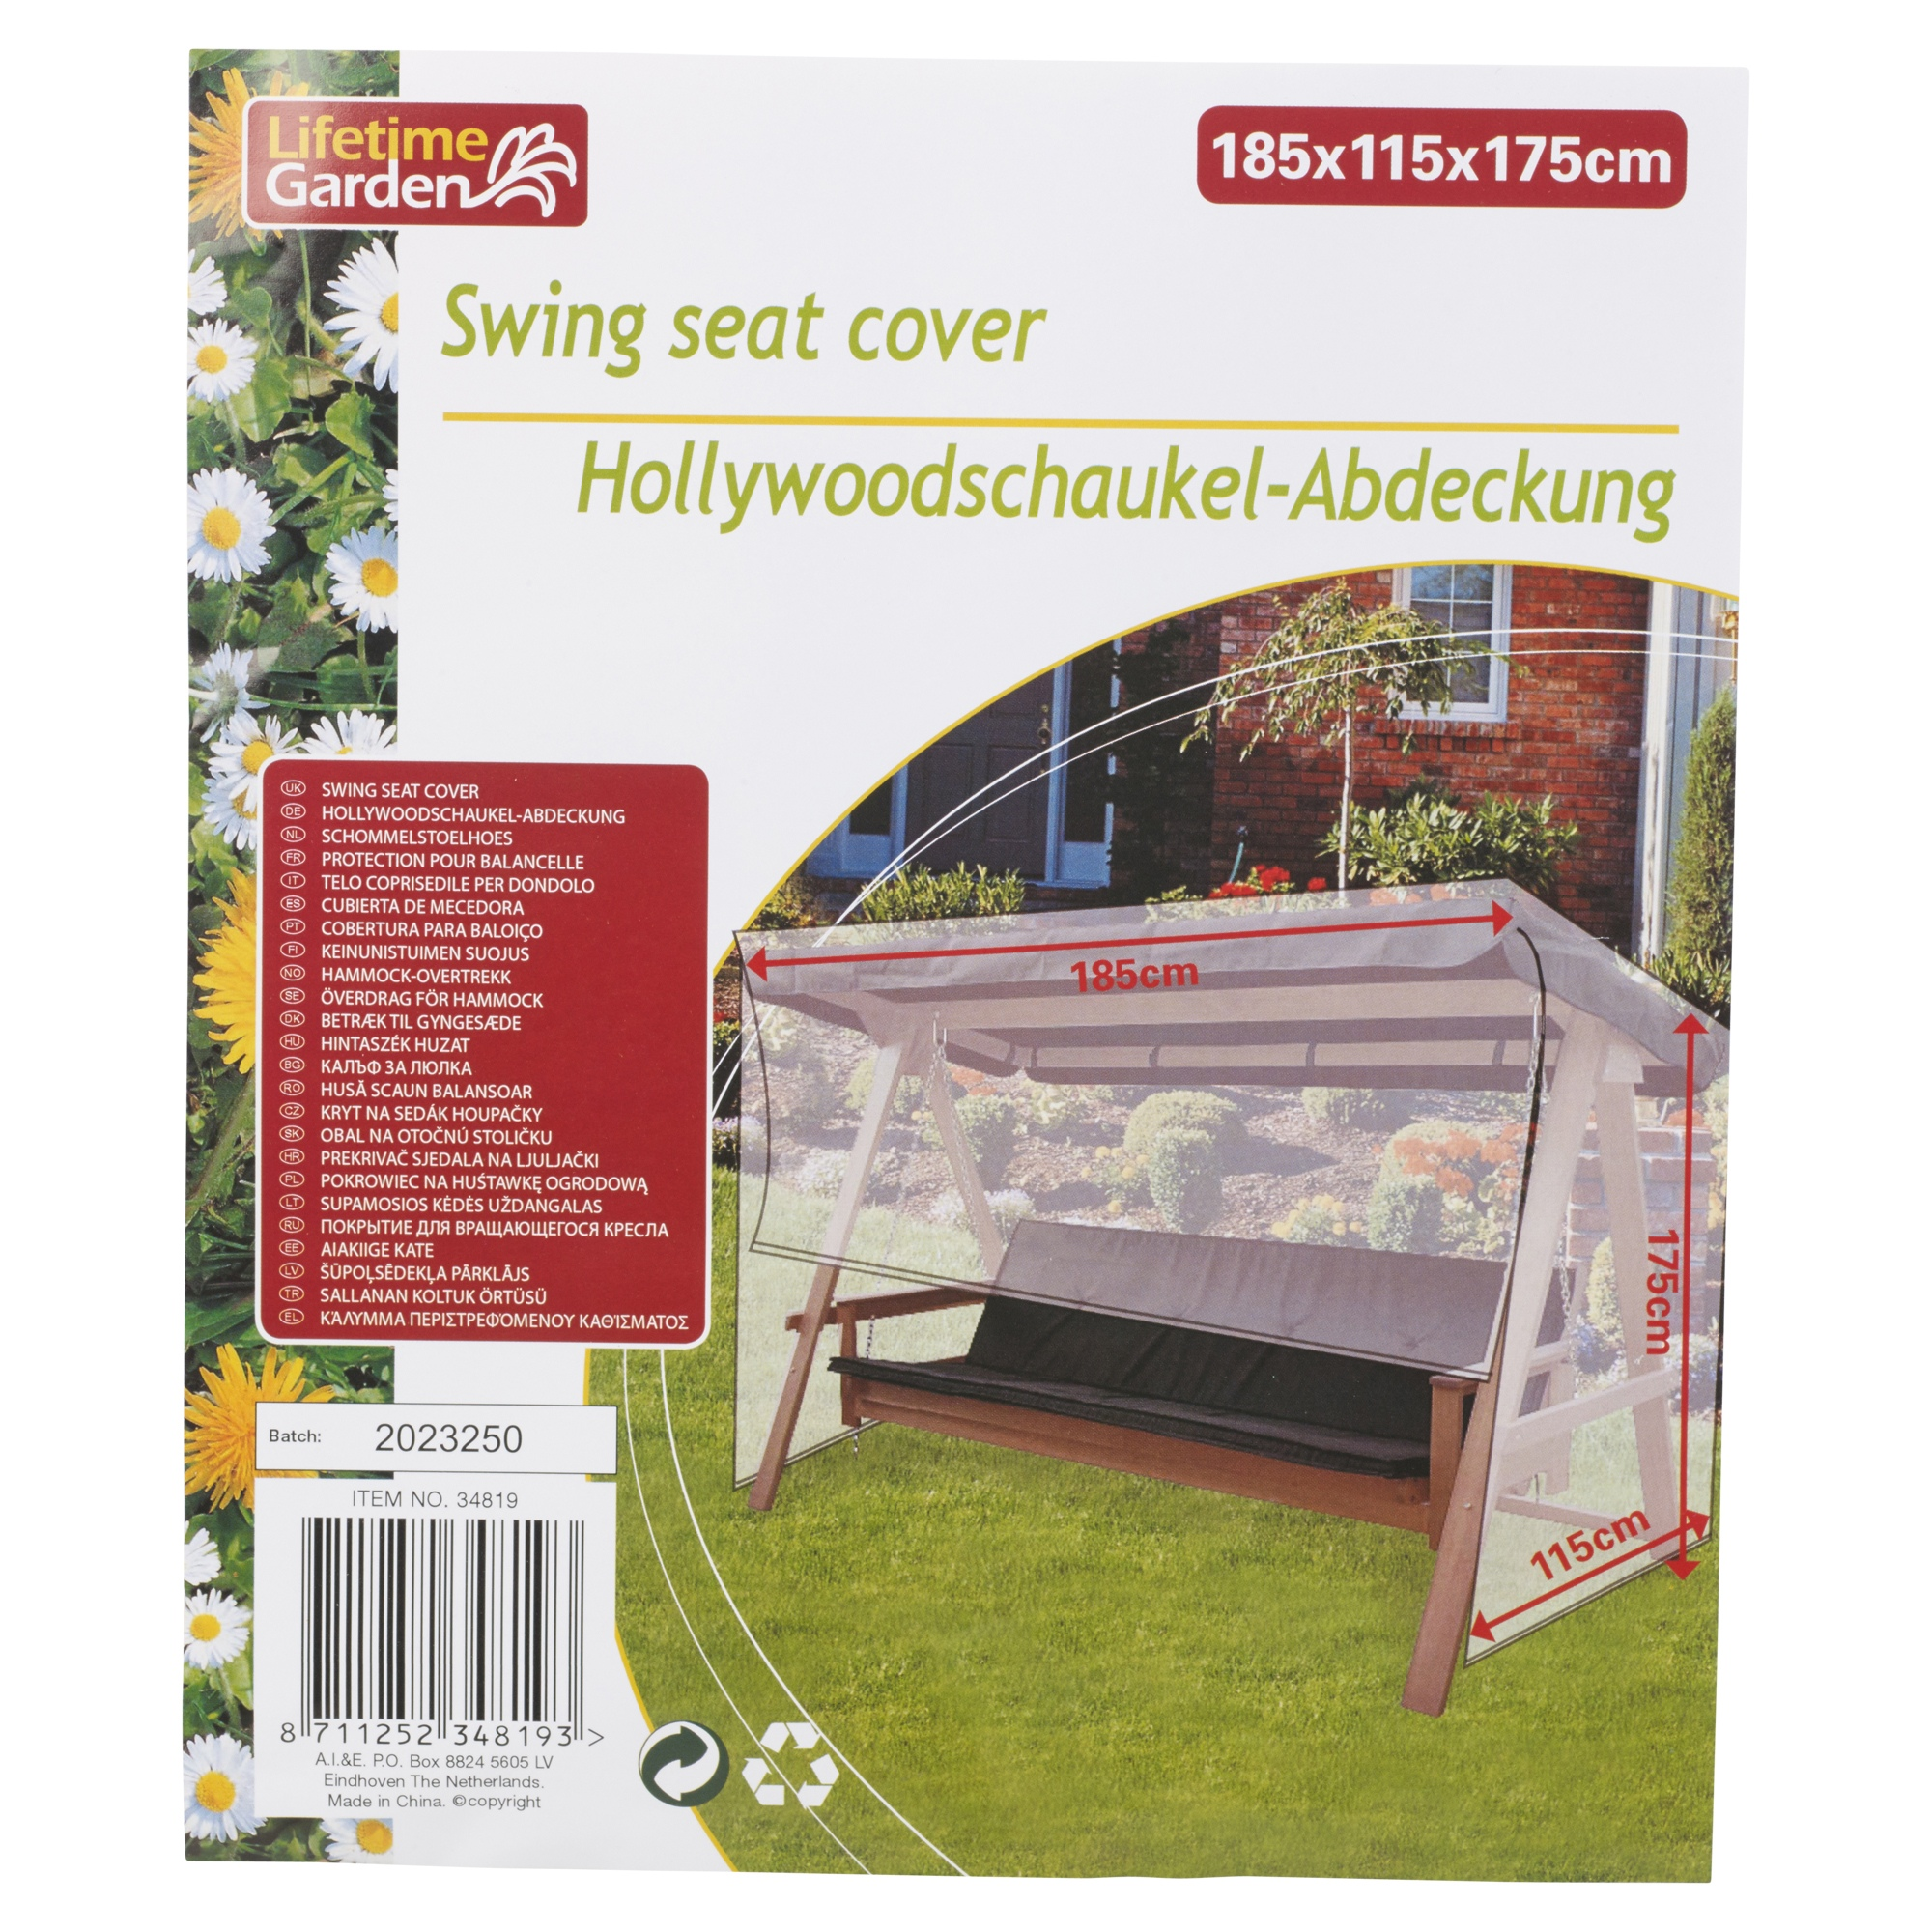 Large Waterproof Garden Furniture Swing Bench Chair Cover